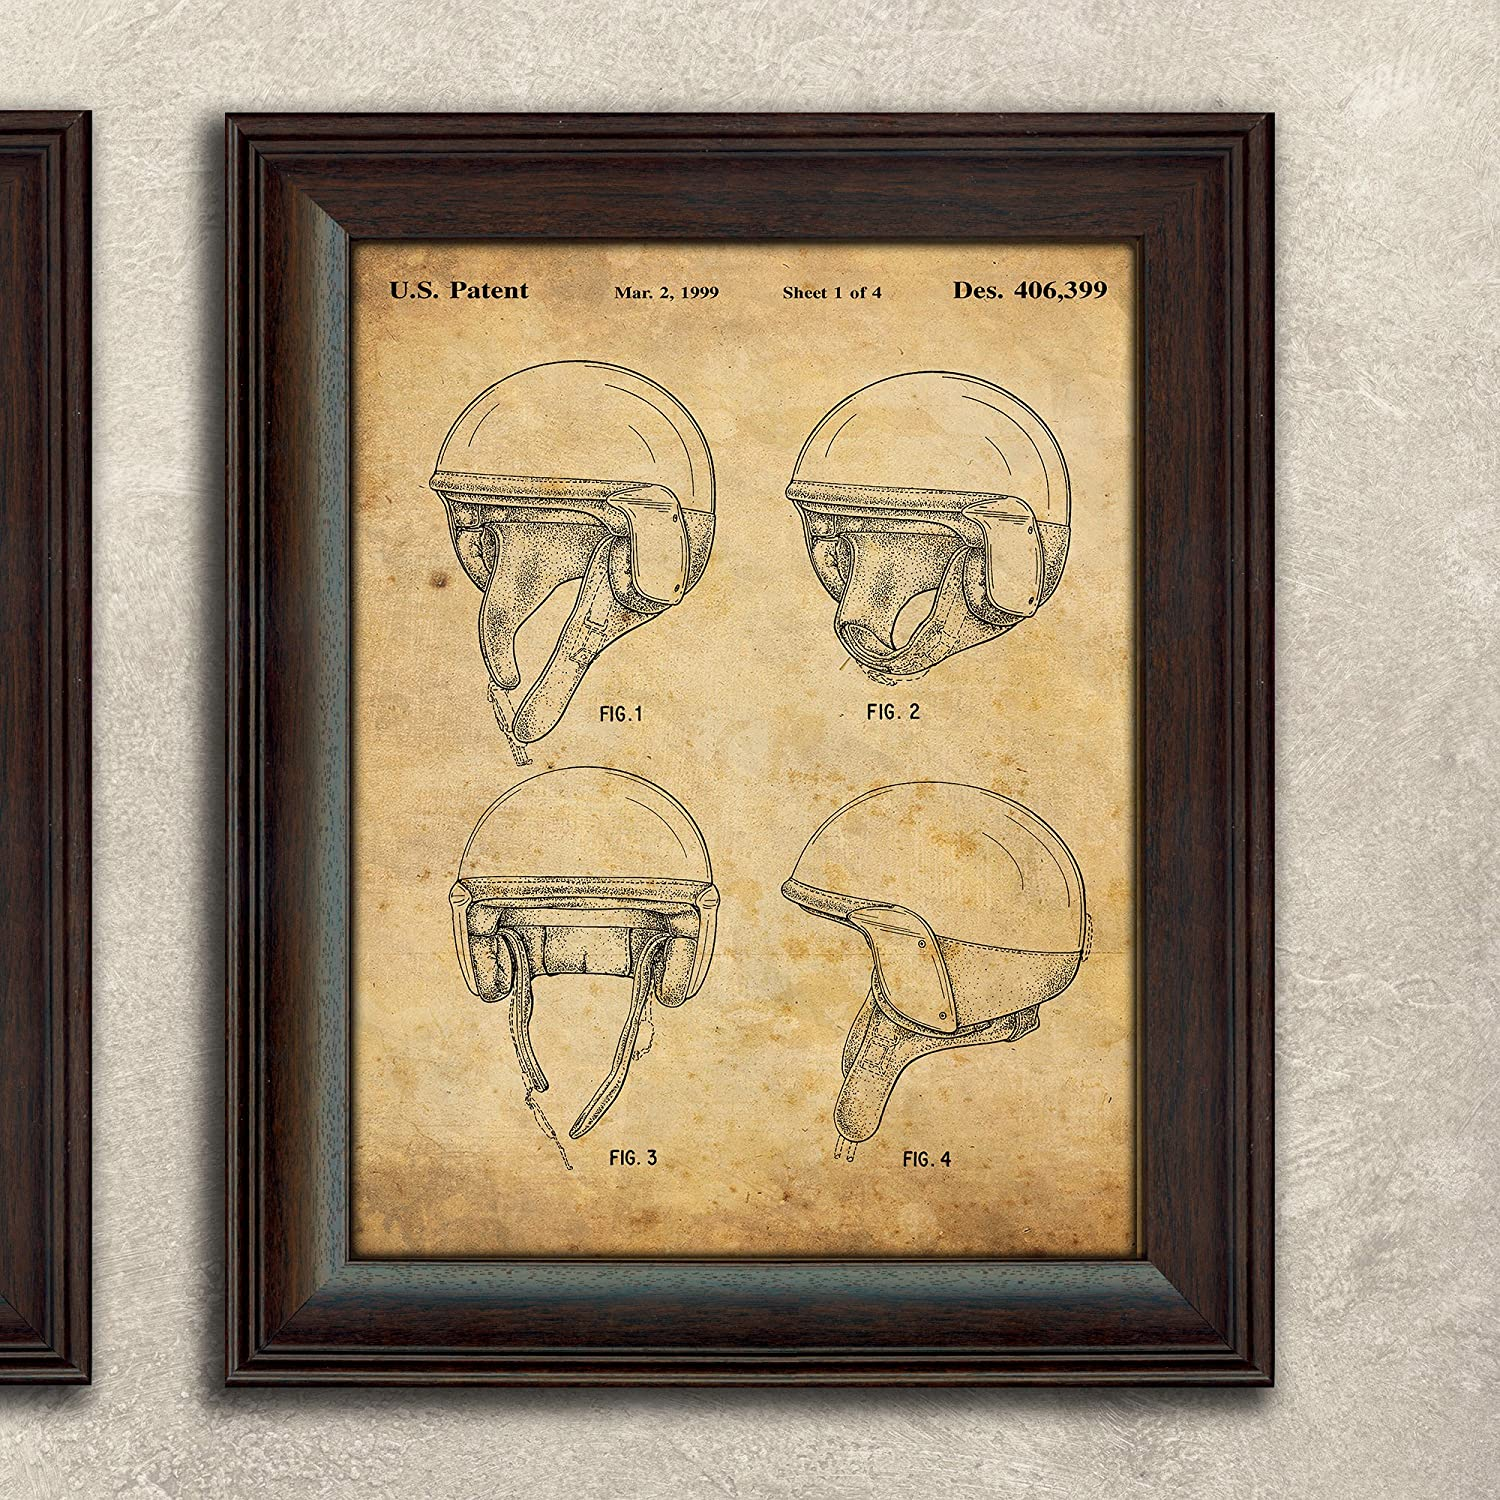 Amazon.com: Personal Prints Harley Davidson Patent Prints - Framed ...